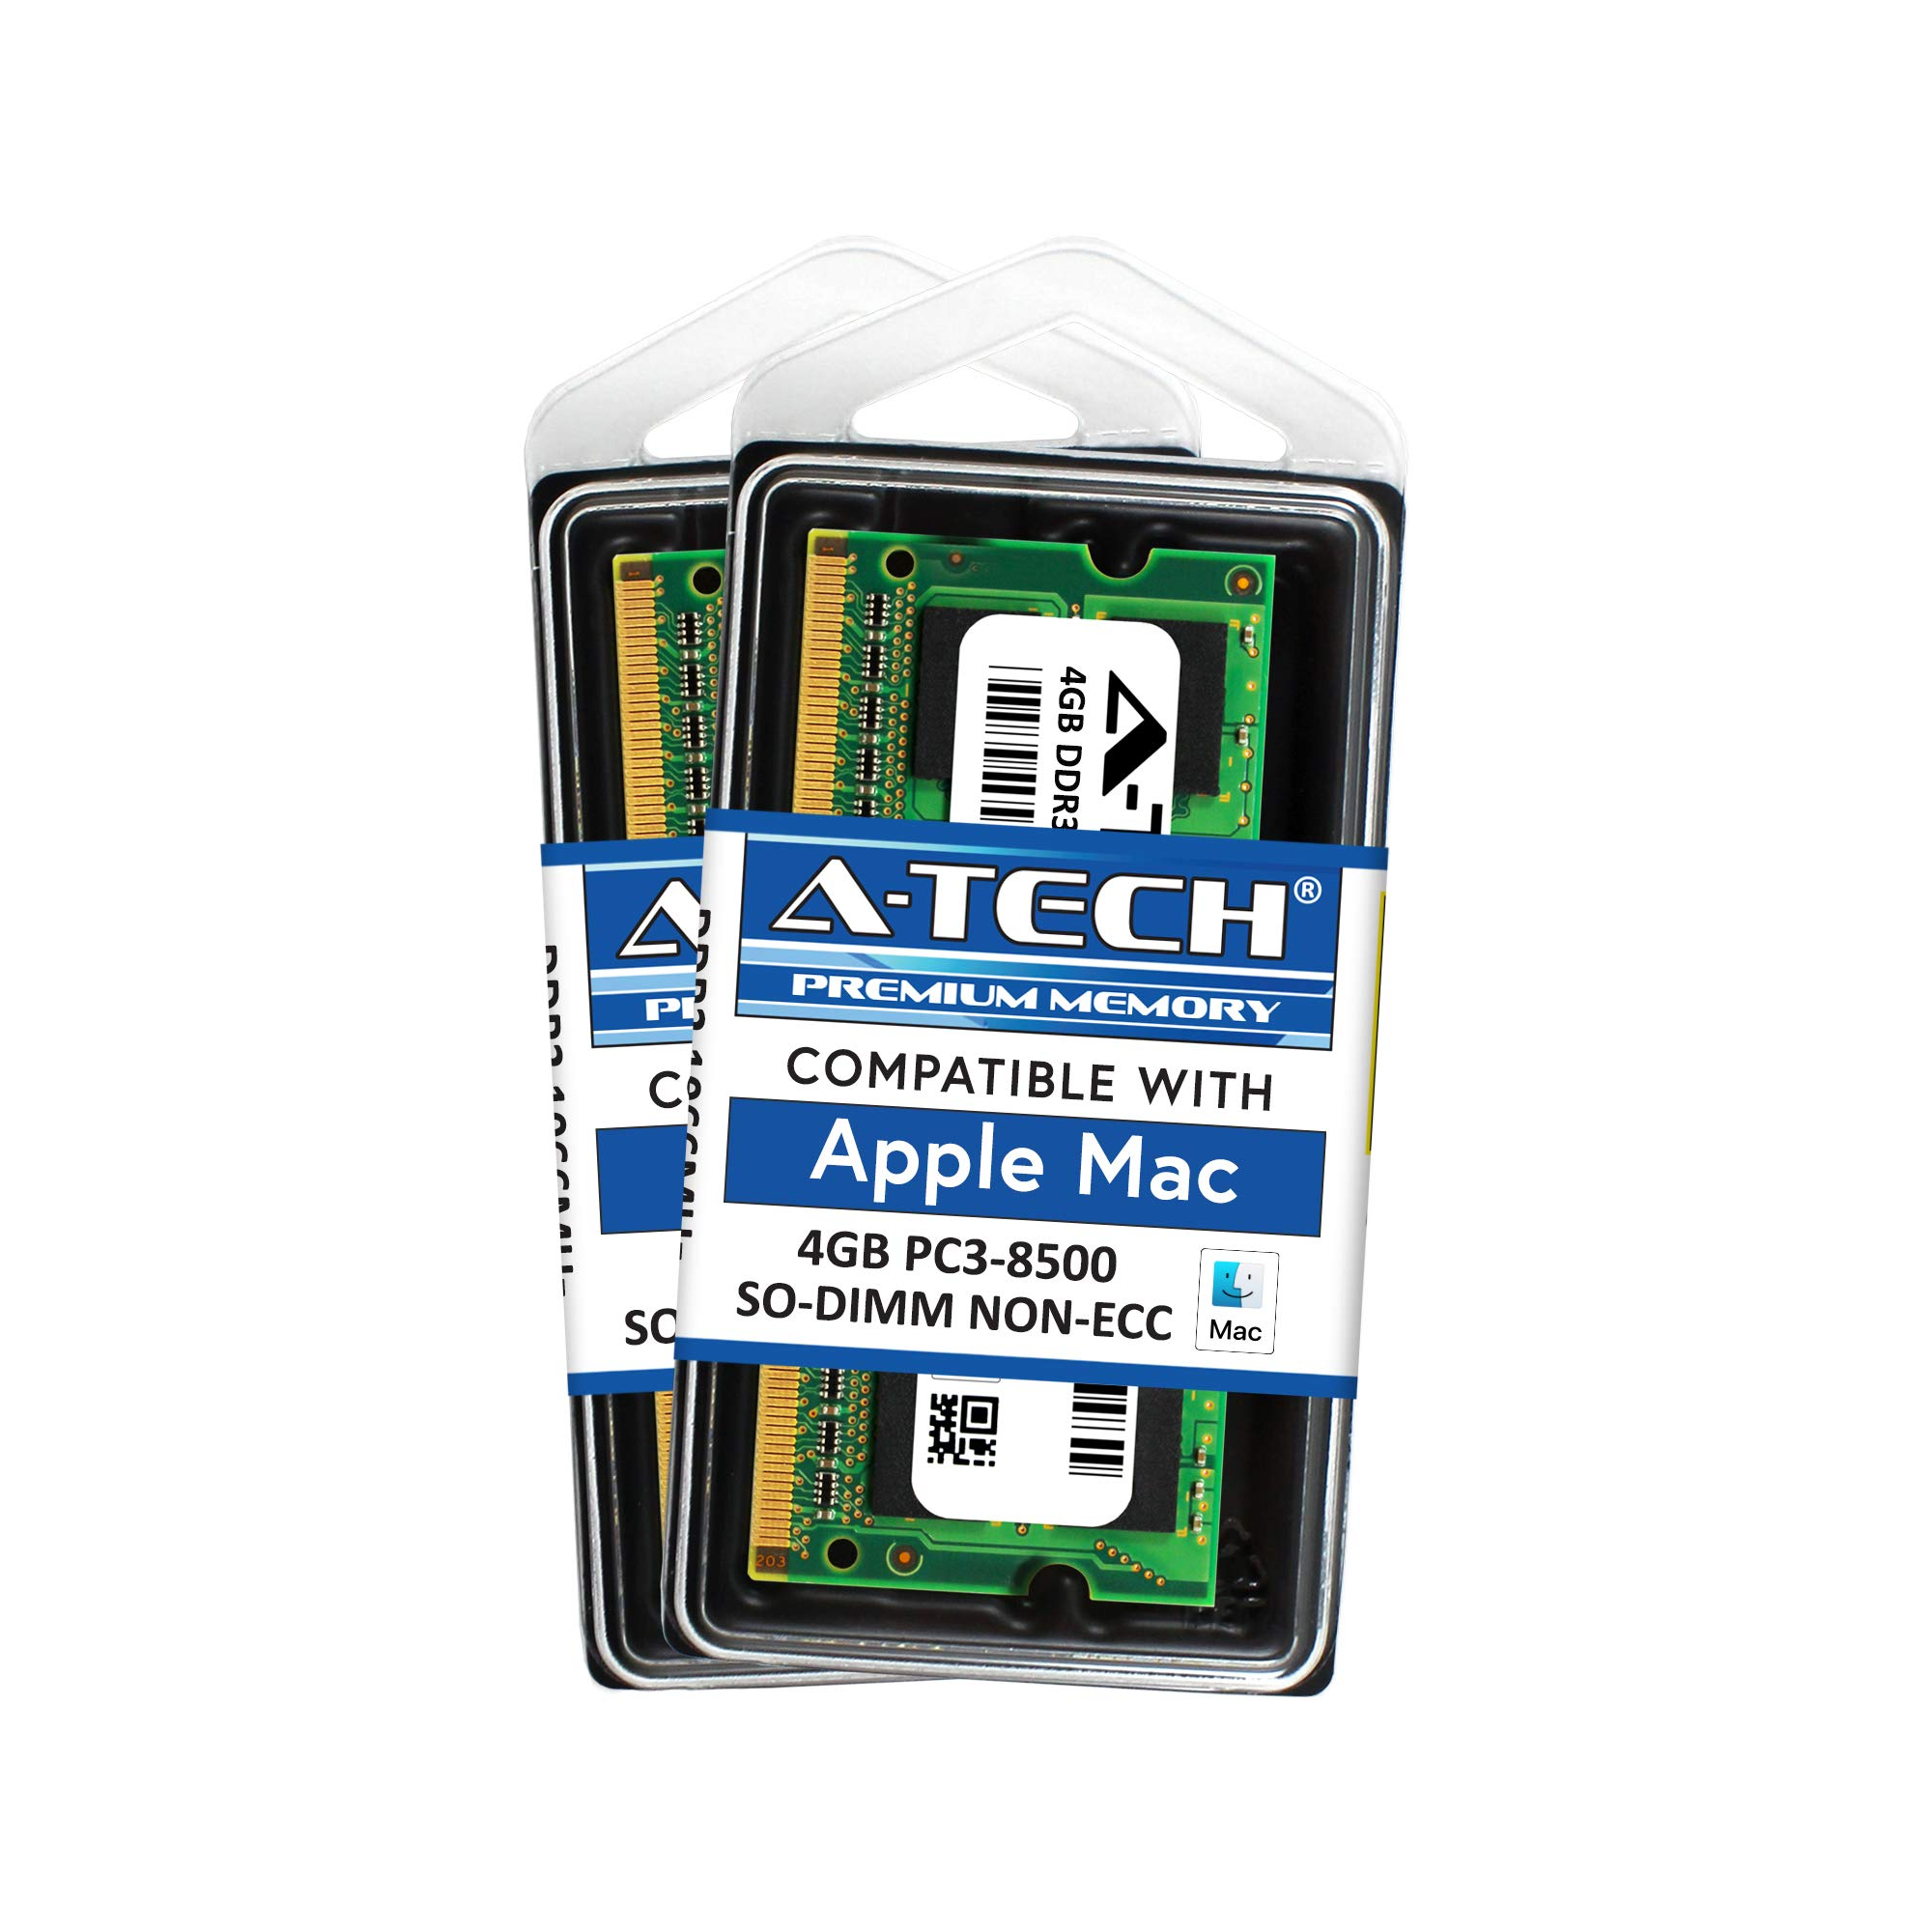 Memoria Ram 8gb A-tech Para Apple Kit (2x 4gb) Ddr3 1067mhz / 1066mhz Pc3-8500 Sodimm Macbook (late 2008 Late 2009 Mid 2